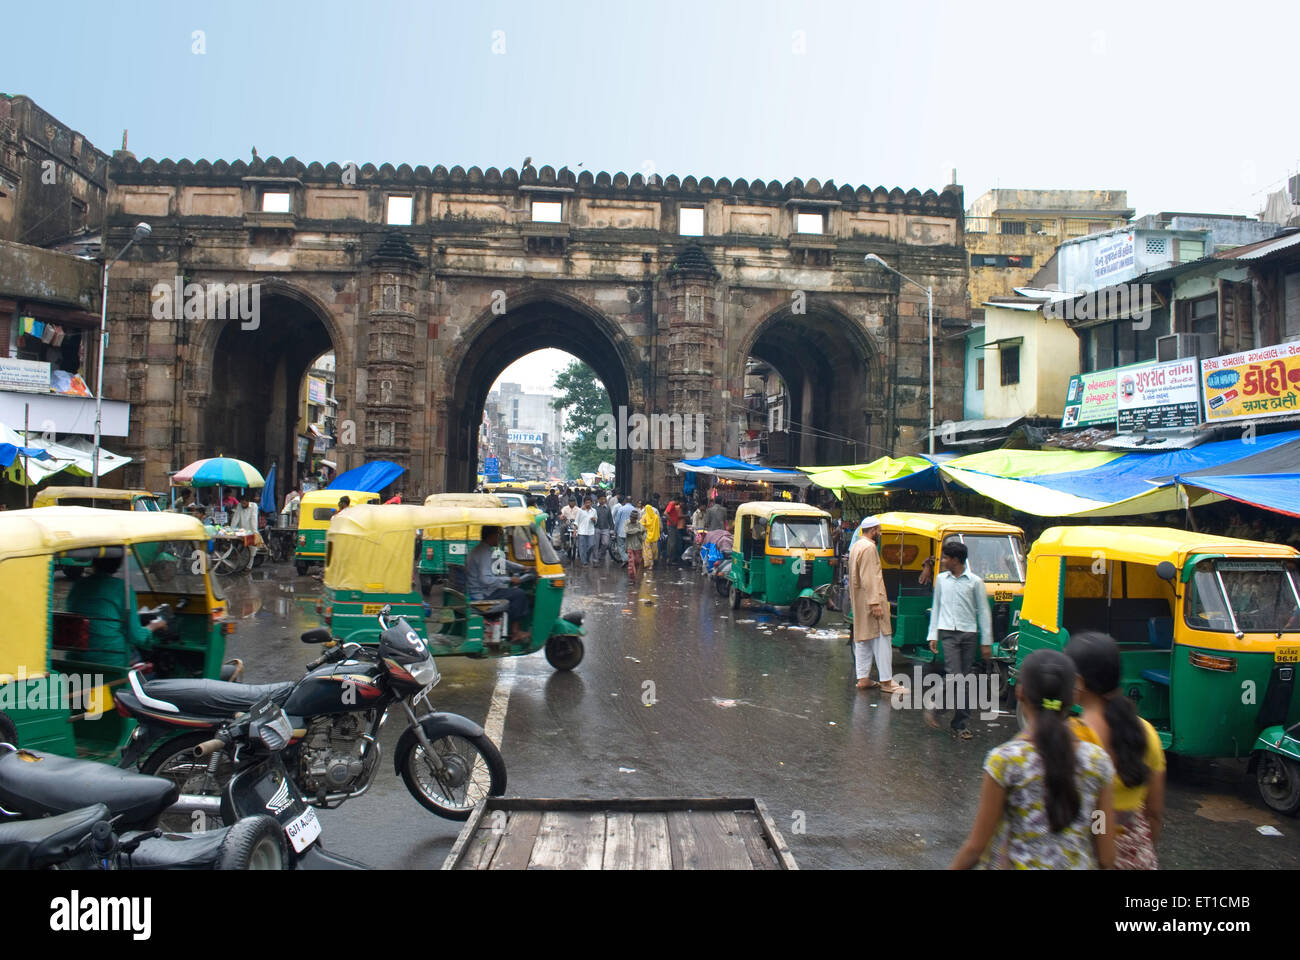 Market scene in monsoon at teen darwaza ; Ahmedabad ; Gujarat ; India - Stock Image